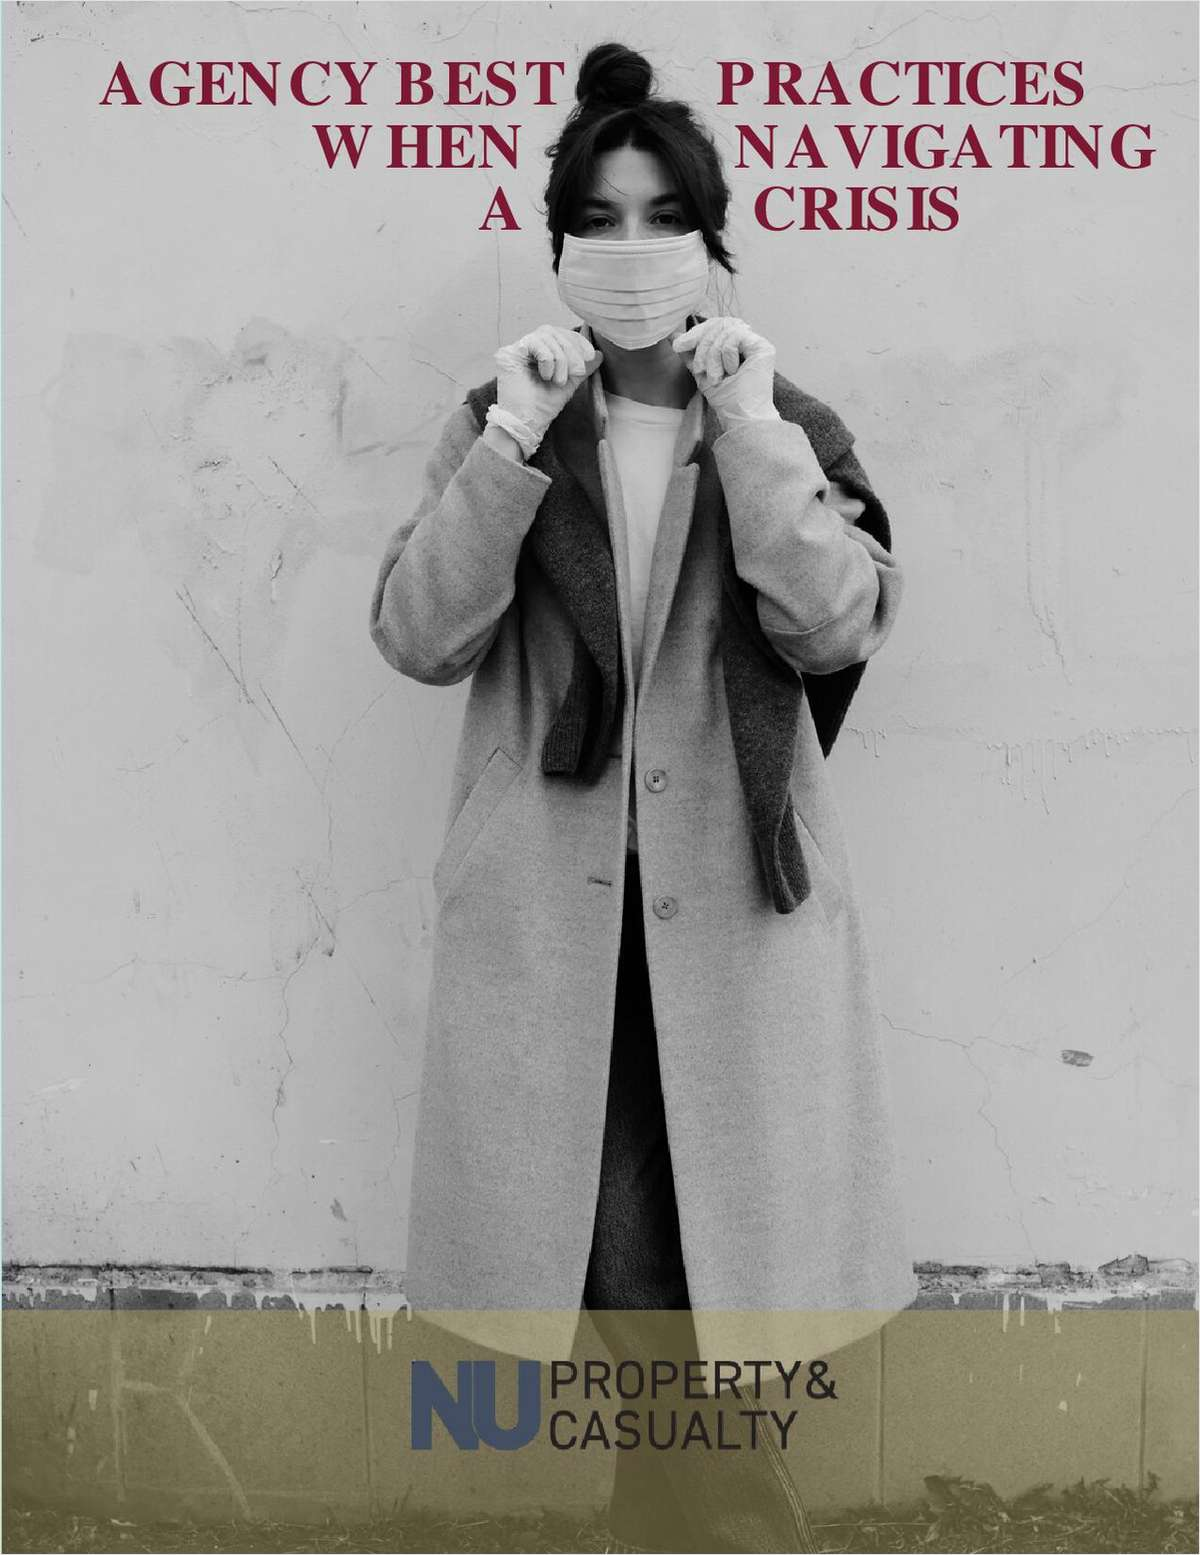 Agency Best Practices When Navigating a Crisis